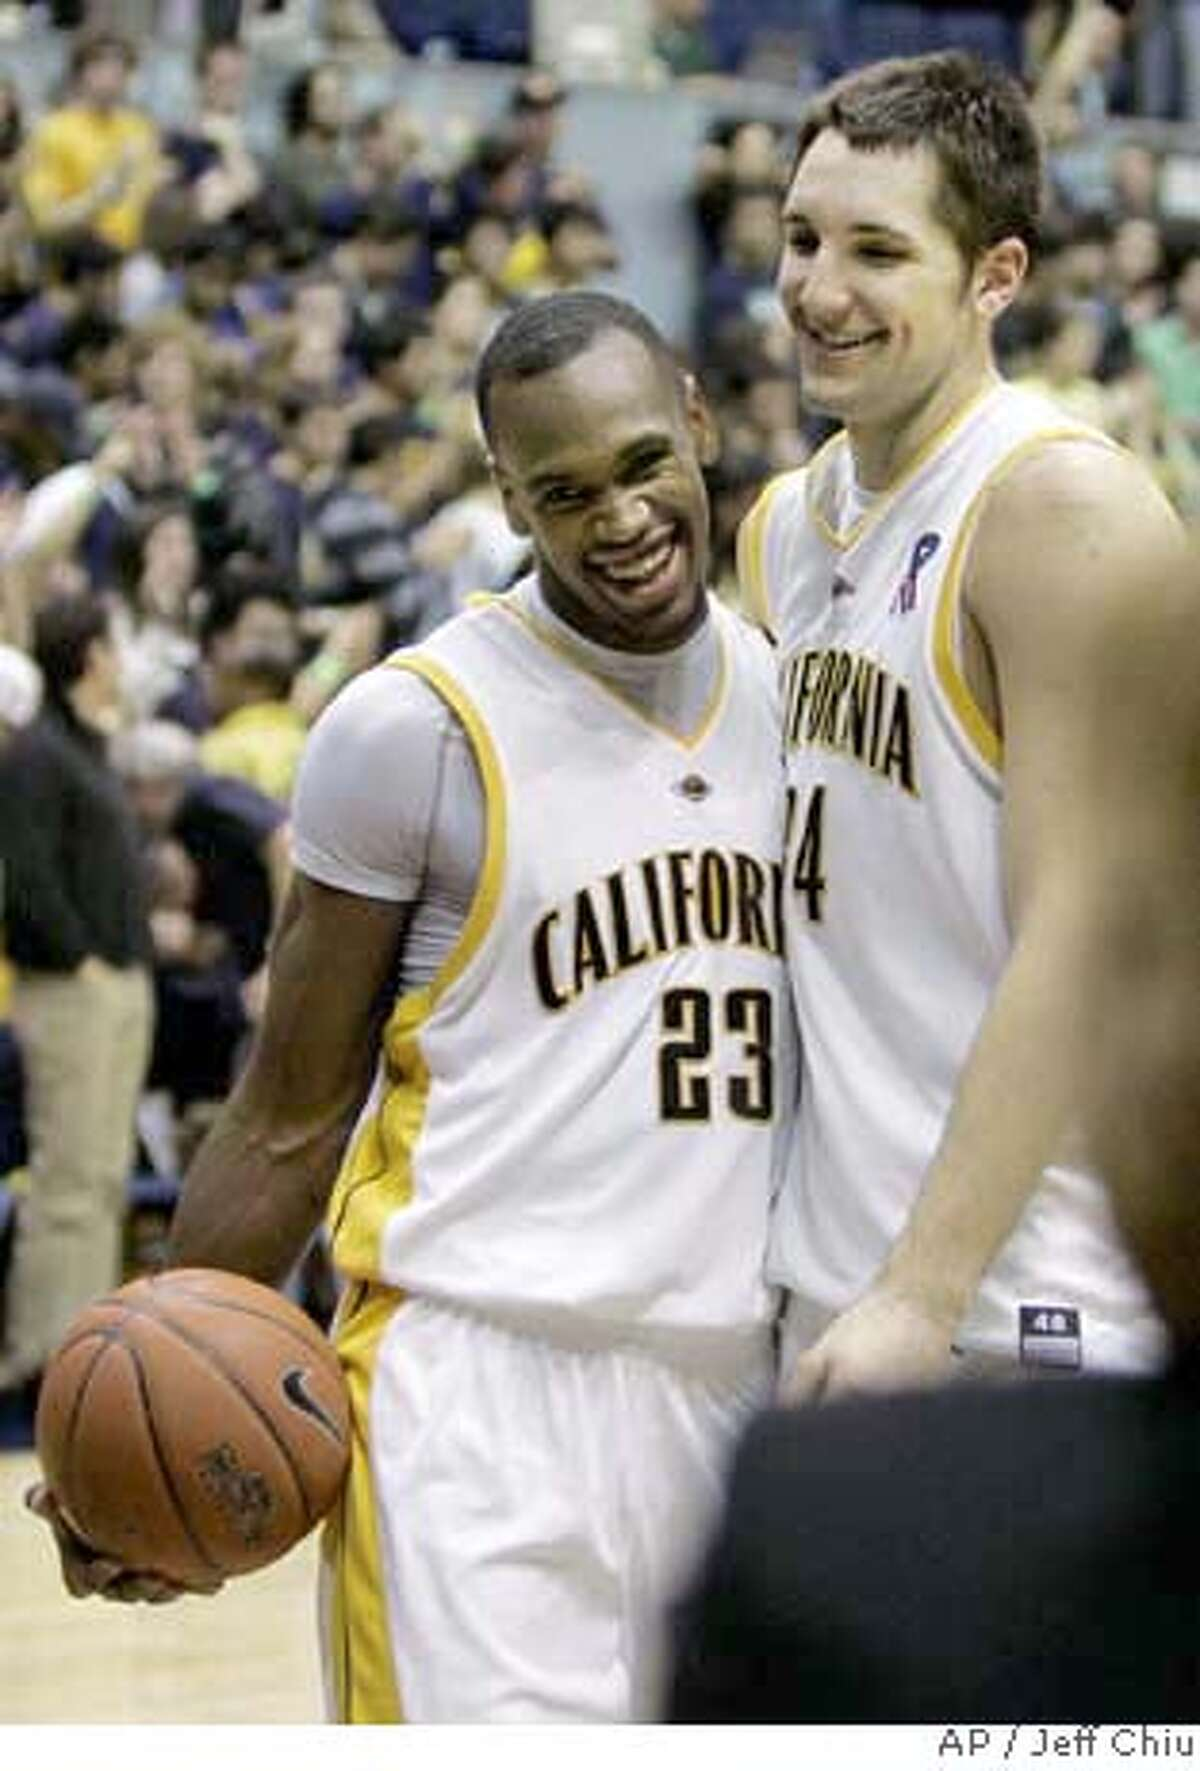 California guard Patrick Christopher, left, and Ryan Anderson celebrate after beating Oregon State in a college basketball game in Berkeley, Calif., Thursday, Feb. 7, 2008. California won 81-76. (AP Photo/Jeff Chiu) EFE OUT